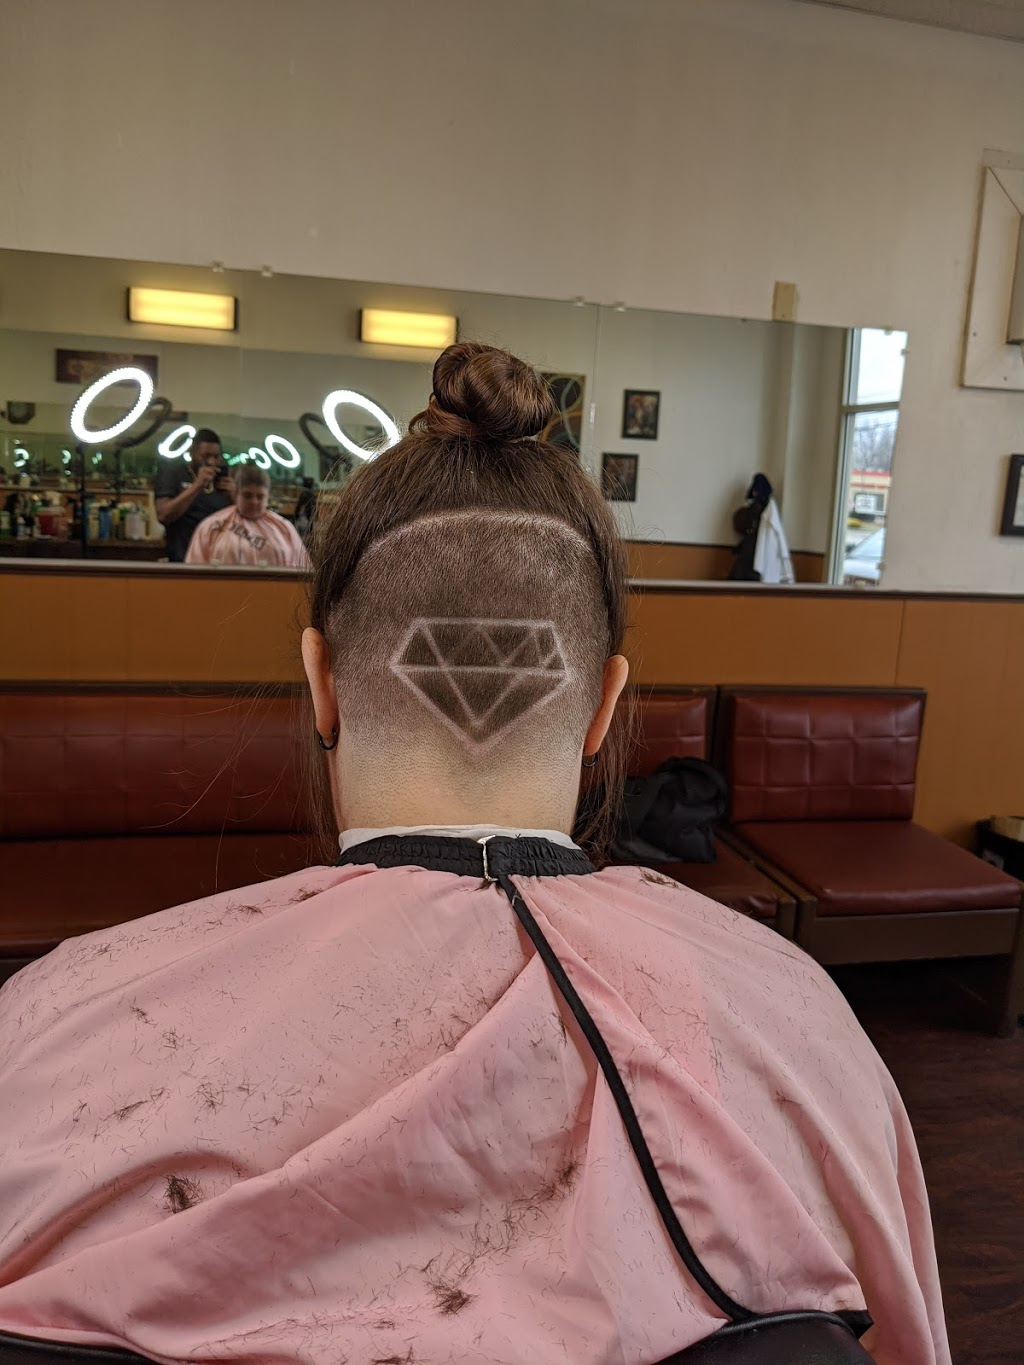 Masters Touch Barbershop LLC - hair care  | Photo 3 of 6 | Address: 31120 Vine St, Willowick, OH 44095, USA | Phone: (216) 298-3993